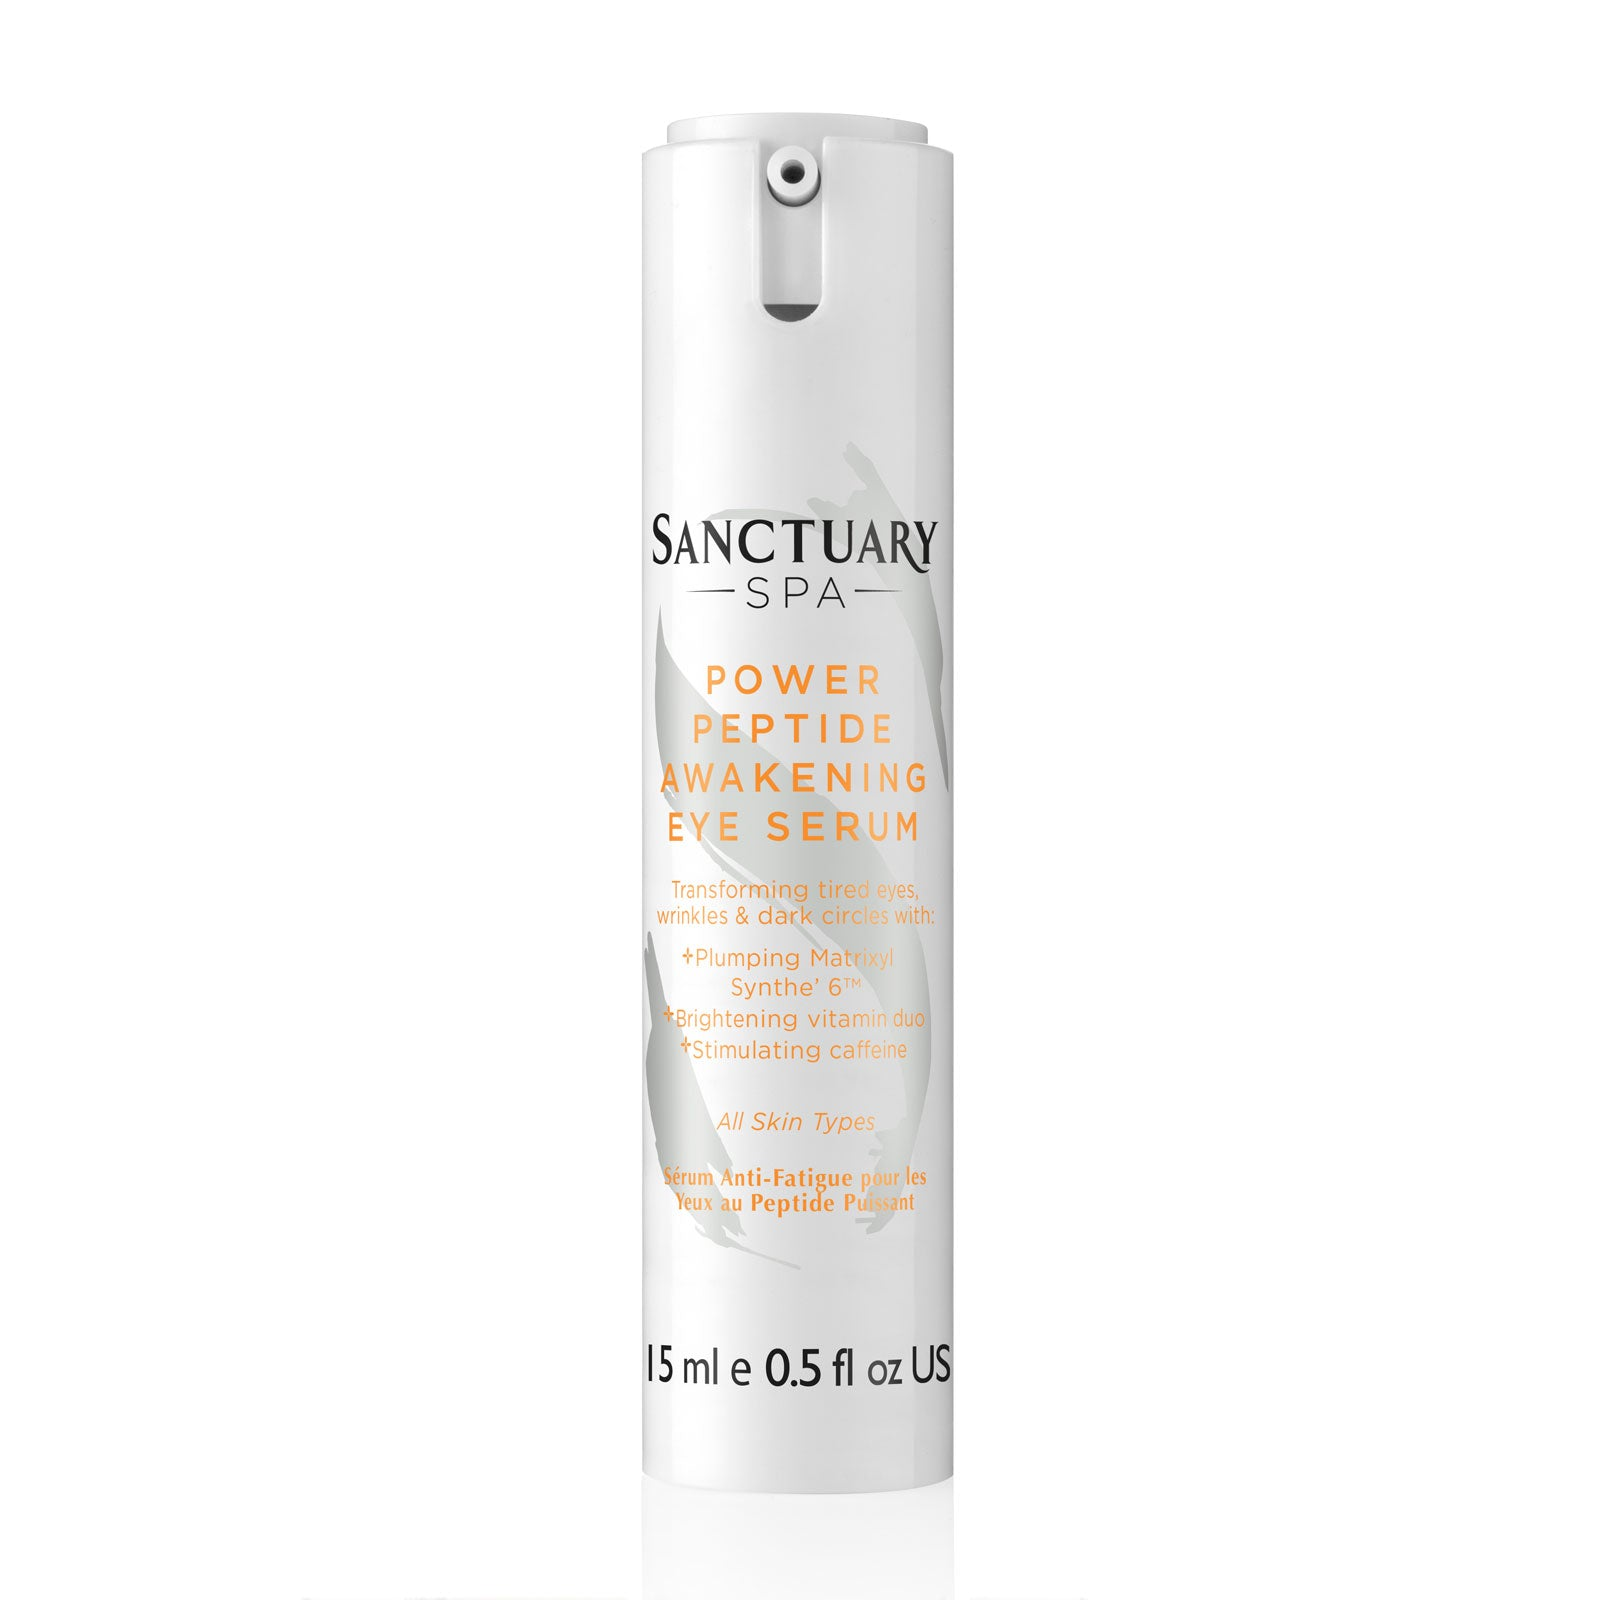 Sanctuary Spa Power Peptide Awakening Eye Serum 15ml